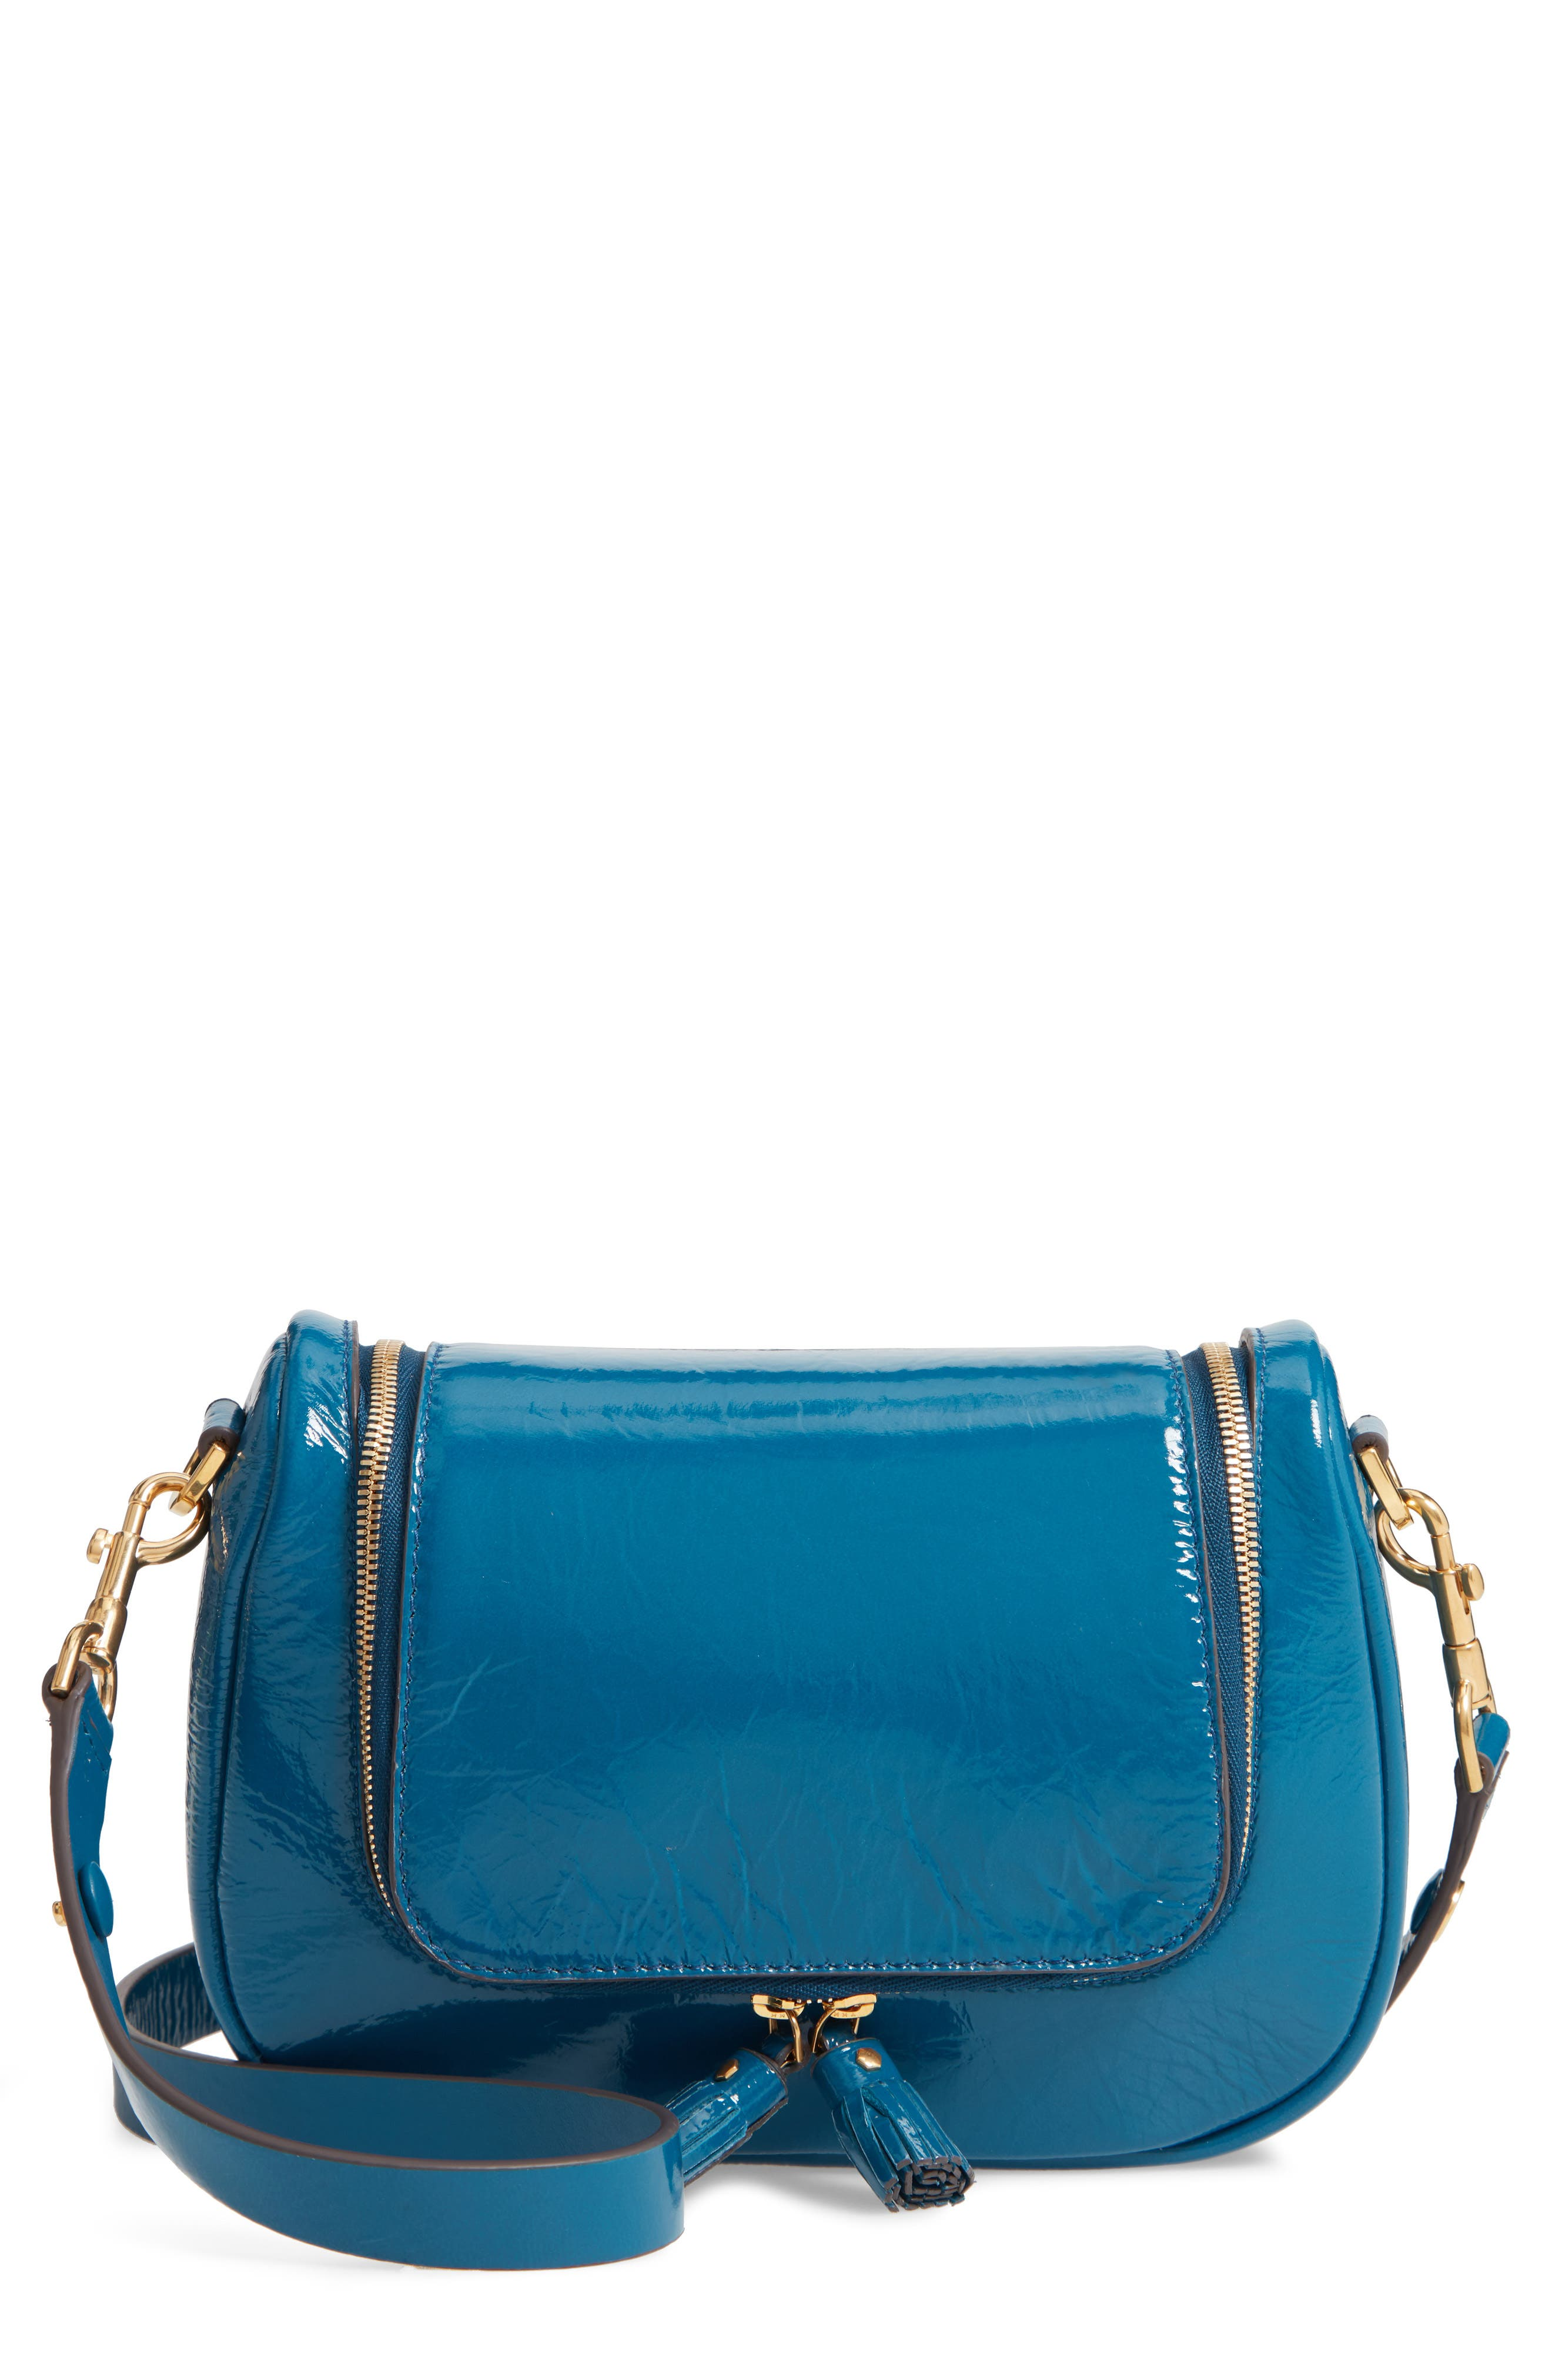 Small Vere Lambskin Leather Crossbody Satchel - Blue in Light Petrol